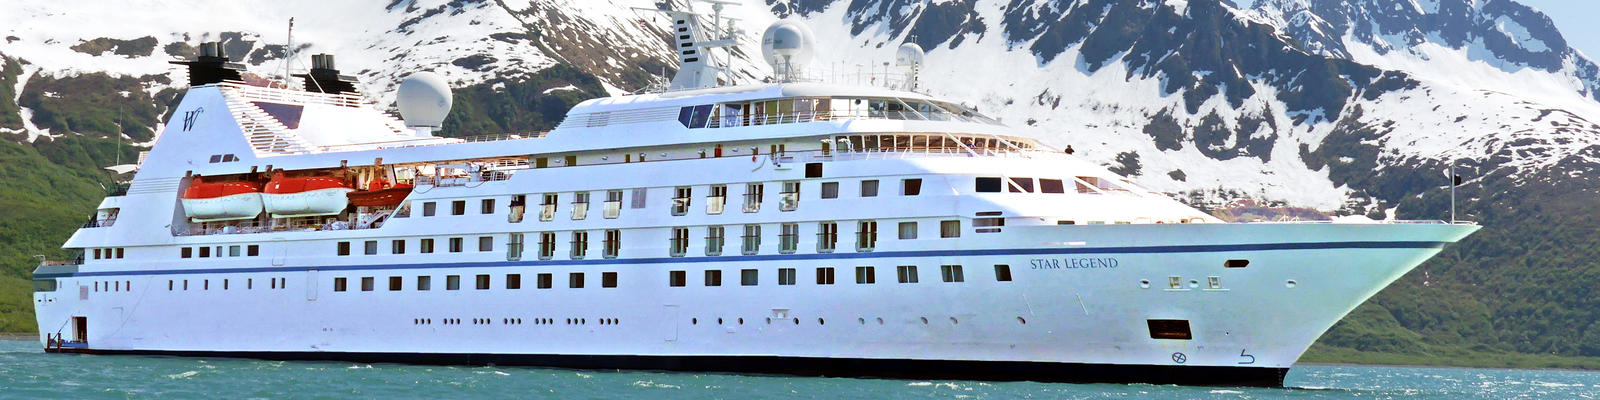 Star Legend in Alaska (Photo: Dori Saltzman/Cruise Critic)